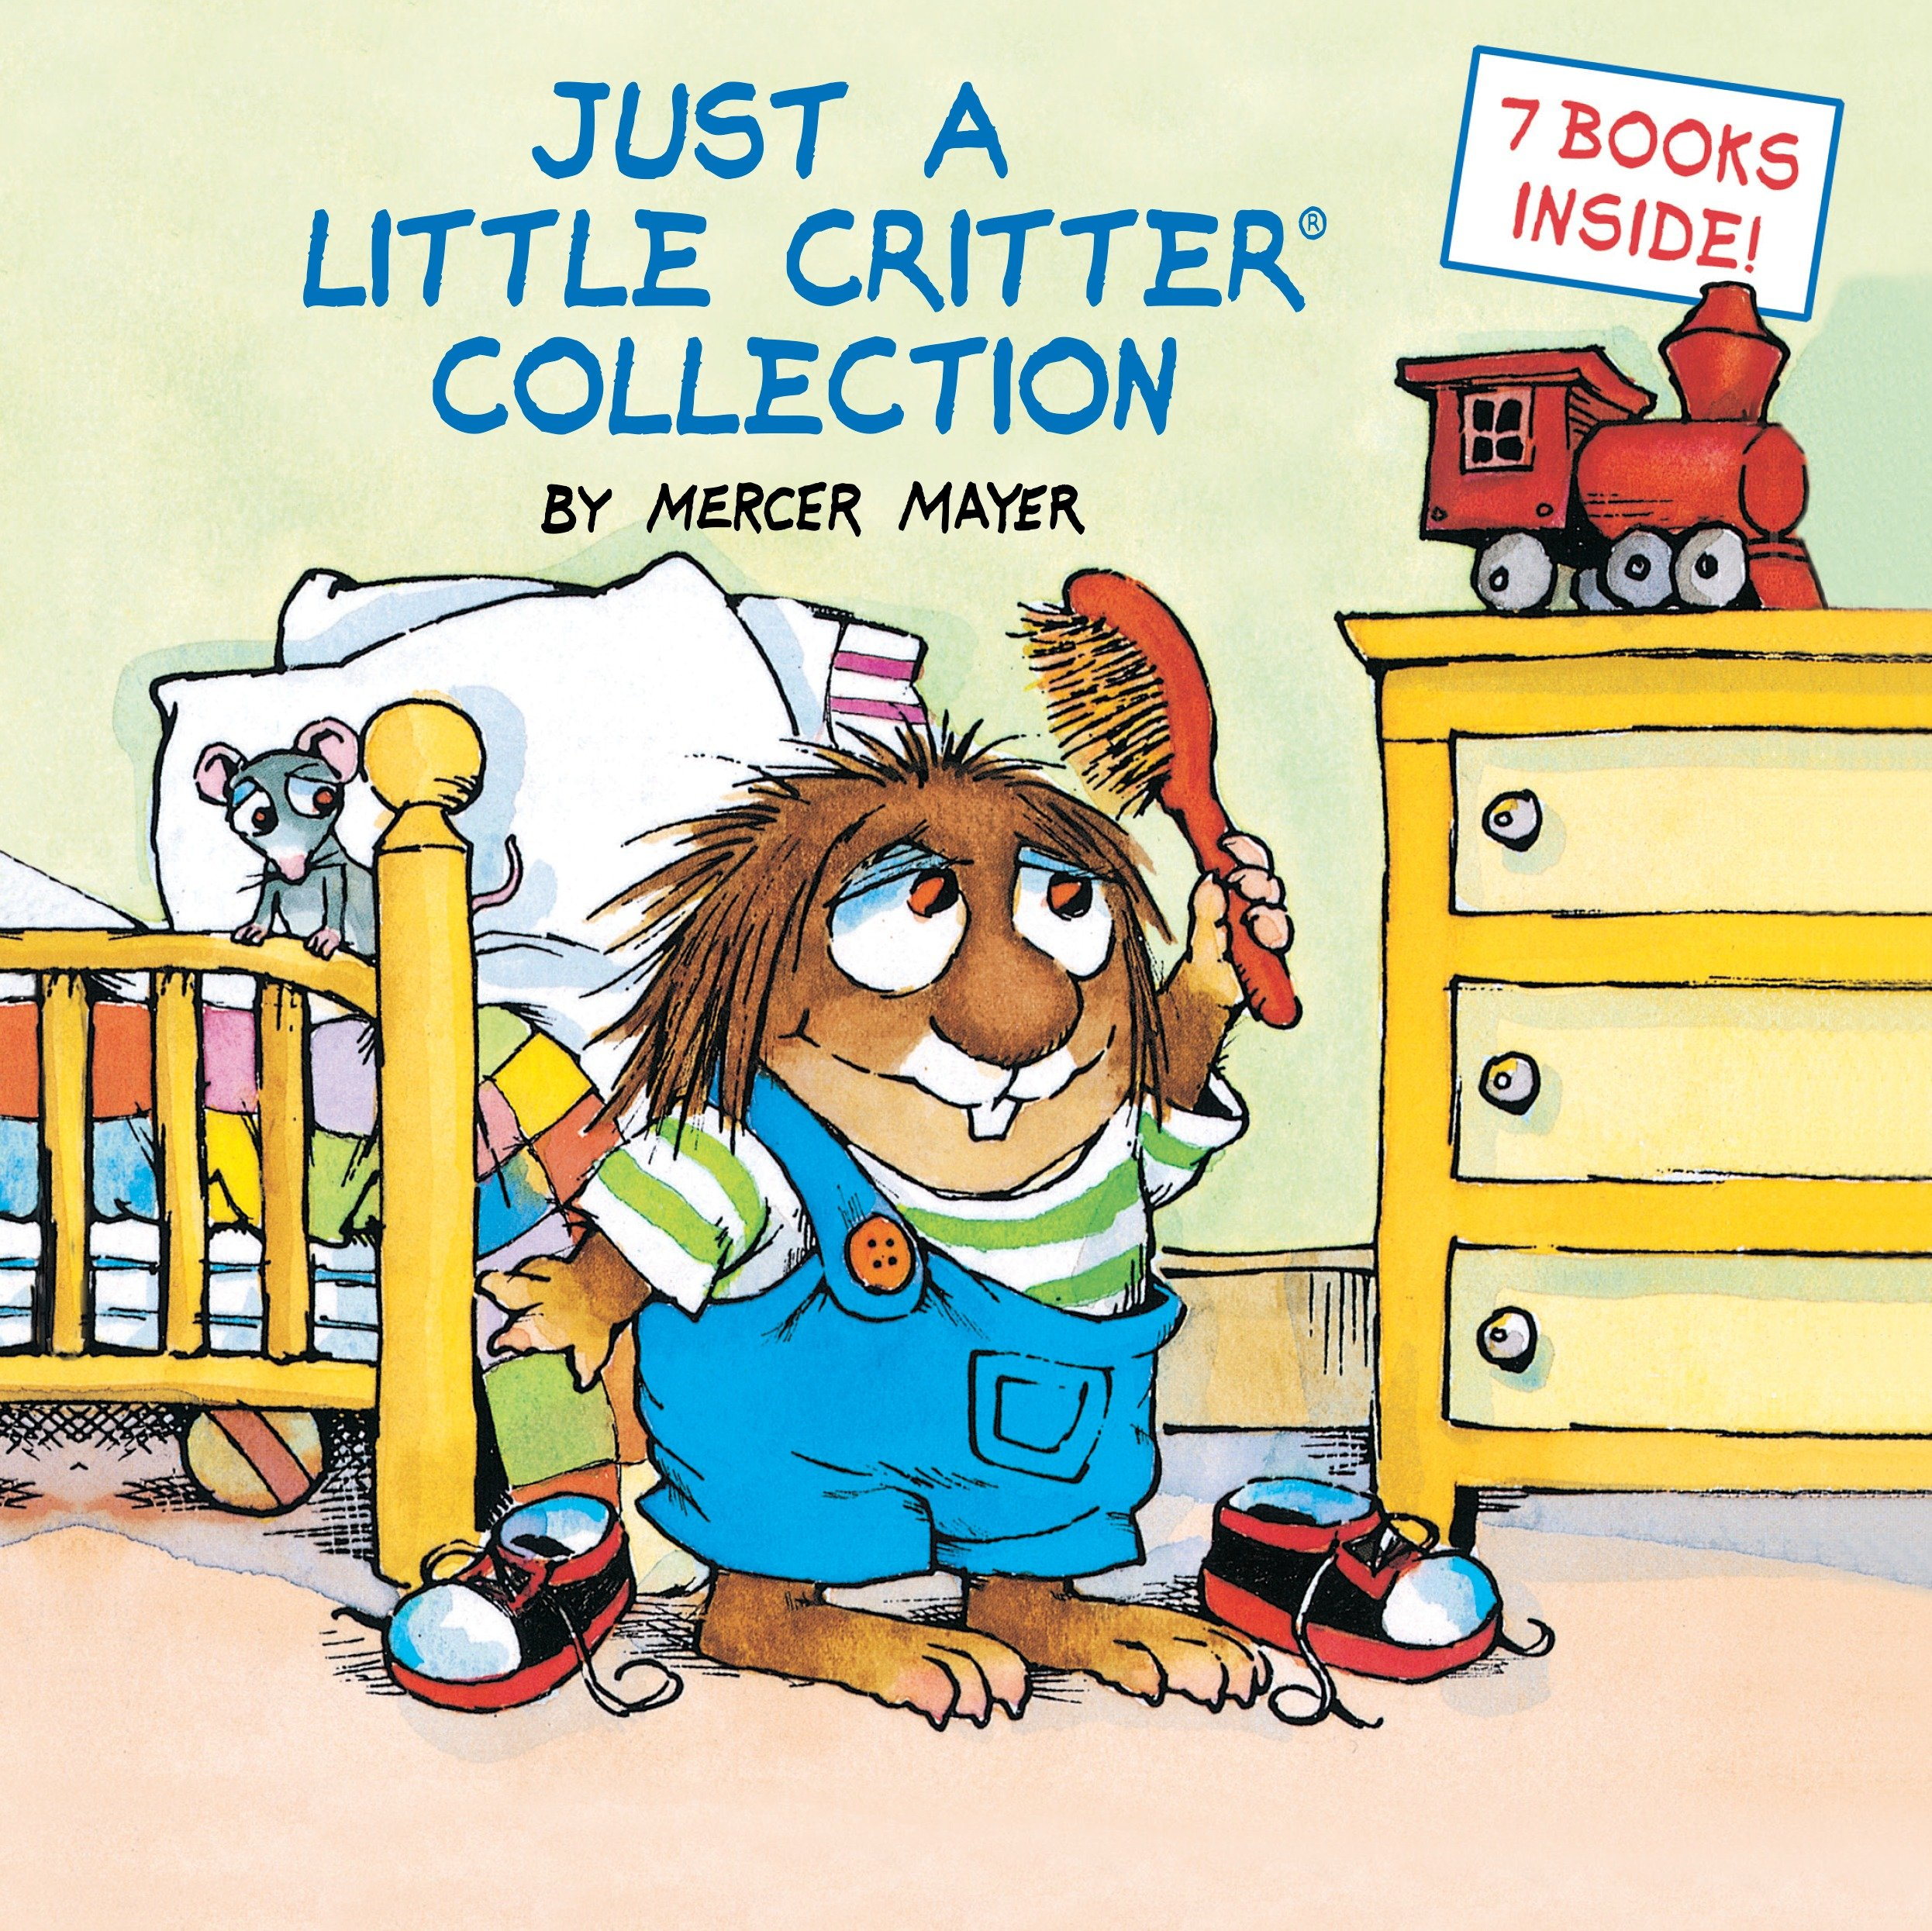 Just a Little Critter Collection (Little Critter) (Hardcover)